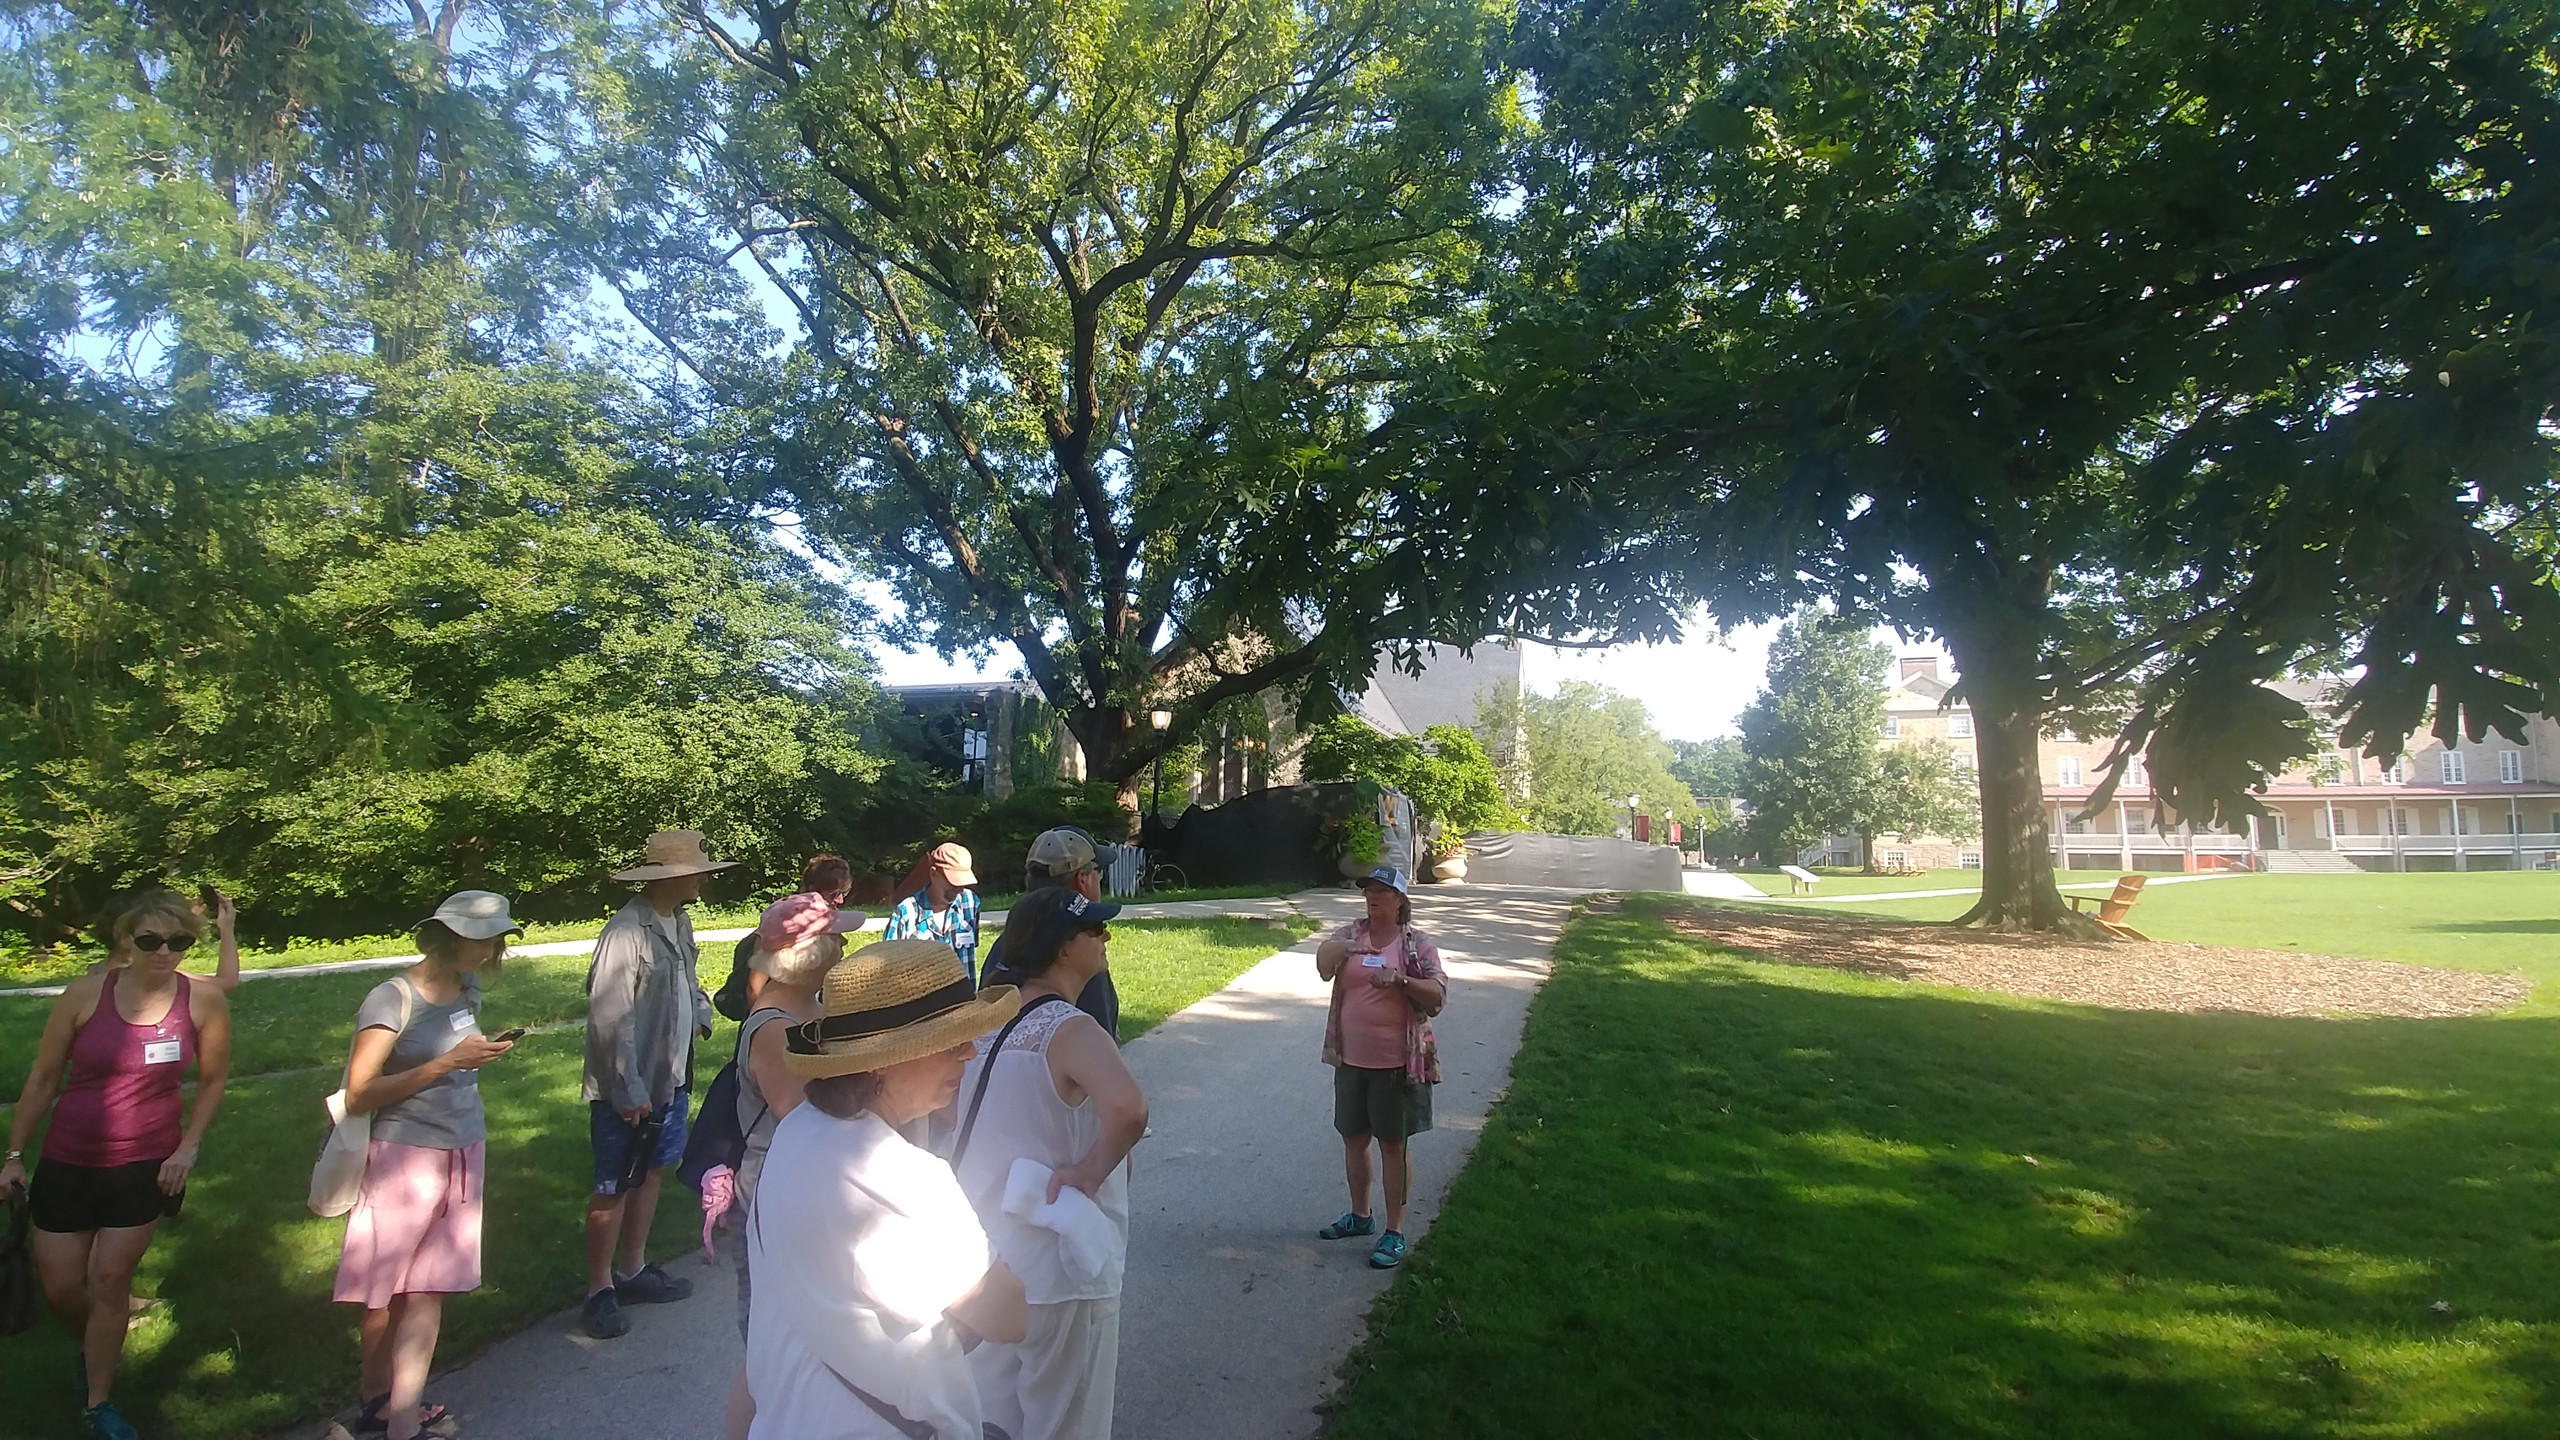 Horticulturist Carol Wagner tells us about the burr oak behind and to her right